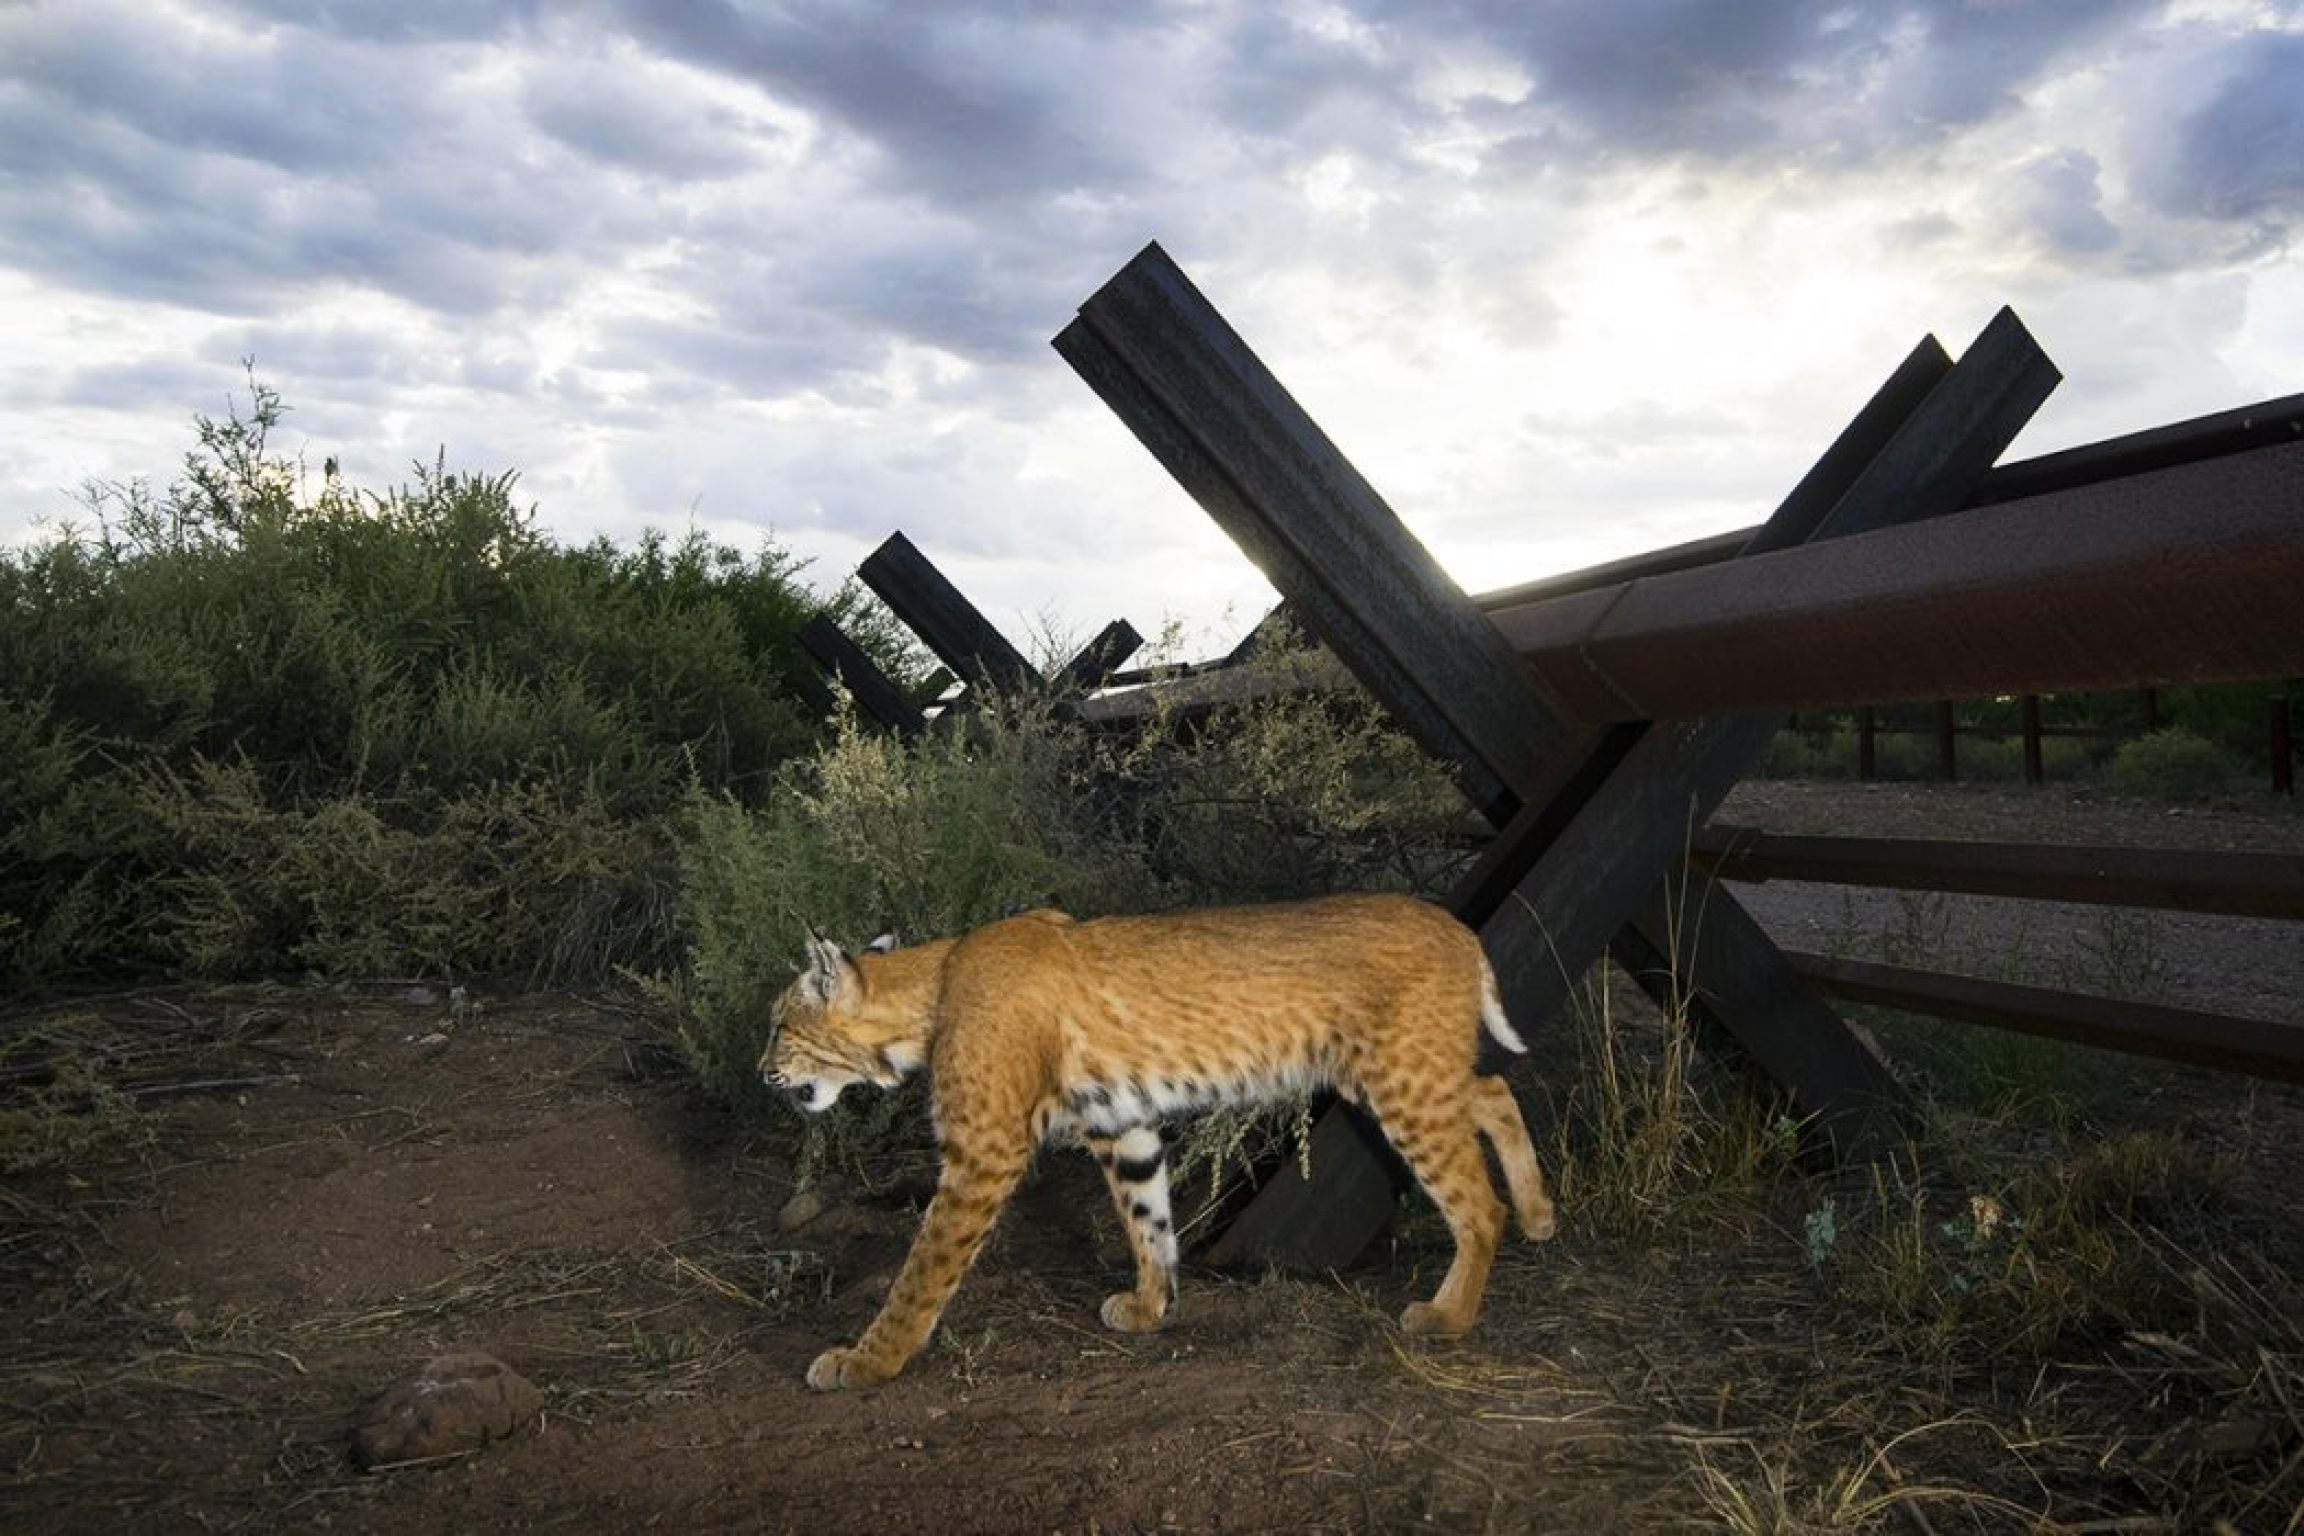 A bobcat is shown walking near a permeable metal section of the US-Mexico border.